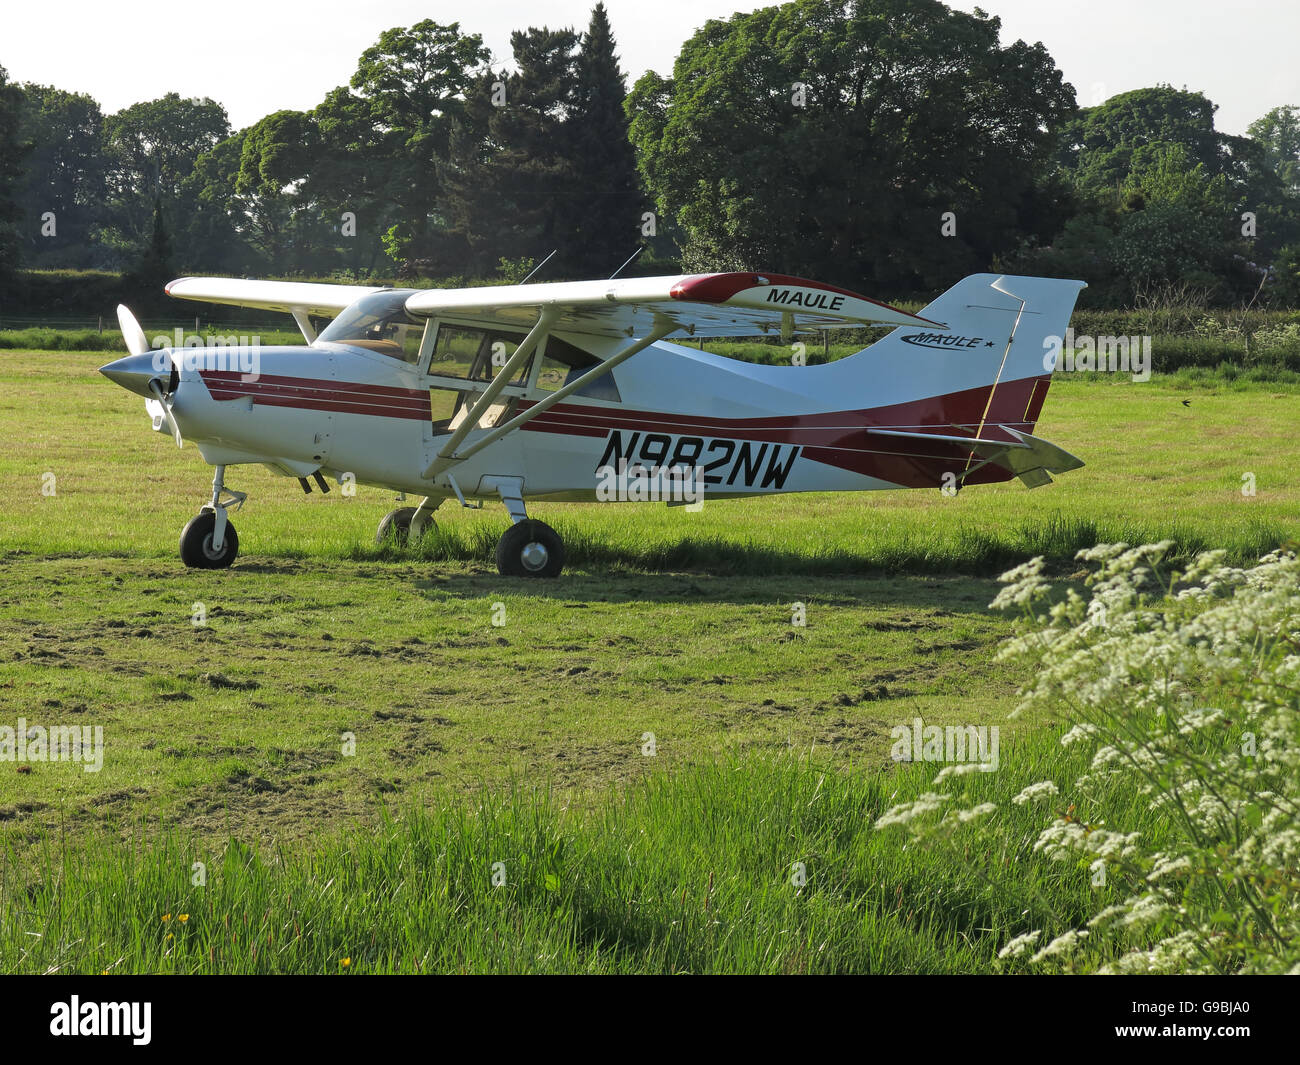 MXT-7,MXT-7-180A,Star,Rocket,Construction,no,21046C,Fixed,wing,single,engine,Lycoming,0-360-C1F,Lycoming,ADB3D3,International,Air,Services,Inc,Trustee,The,England,UK,GB,crash,Star Rocket,Lycoming 0-360-C1F,International Air Services Inc Trustee,Coach House,Crogga Santon,United Kingdom,GoTonySmith,@HotpixUK,aircrash,air,crash,disaster,prop,propeller,airline,famous,person,farmers,5,seat,5seat,five,red,white,Buy Pictures of,Buy Images Of,Images of,Stock Images,Farmers Field,5 seat